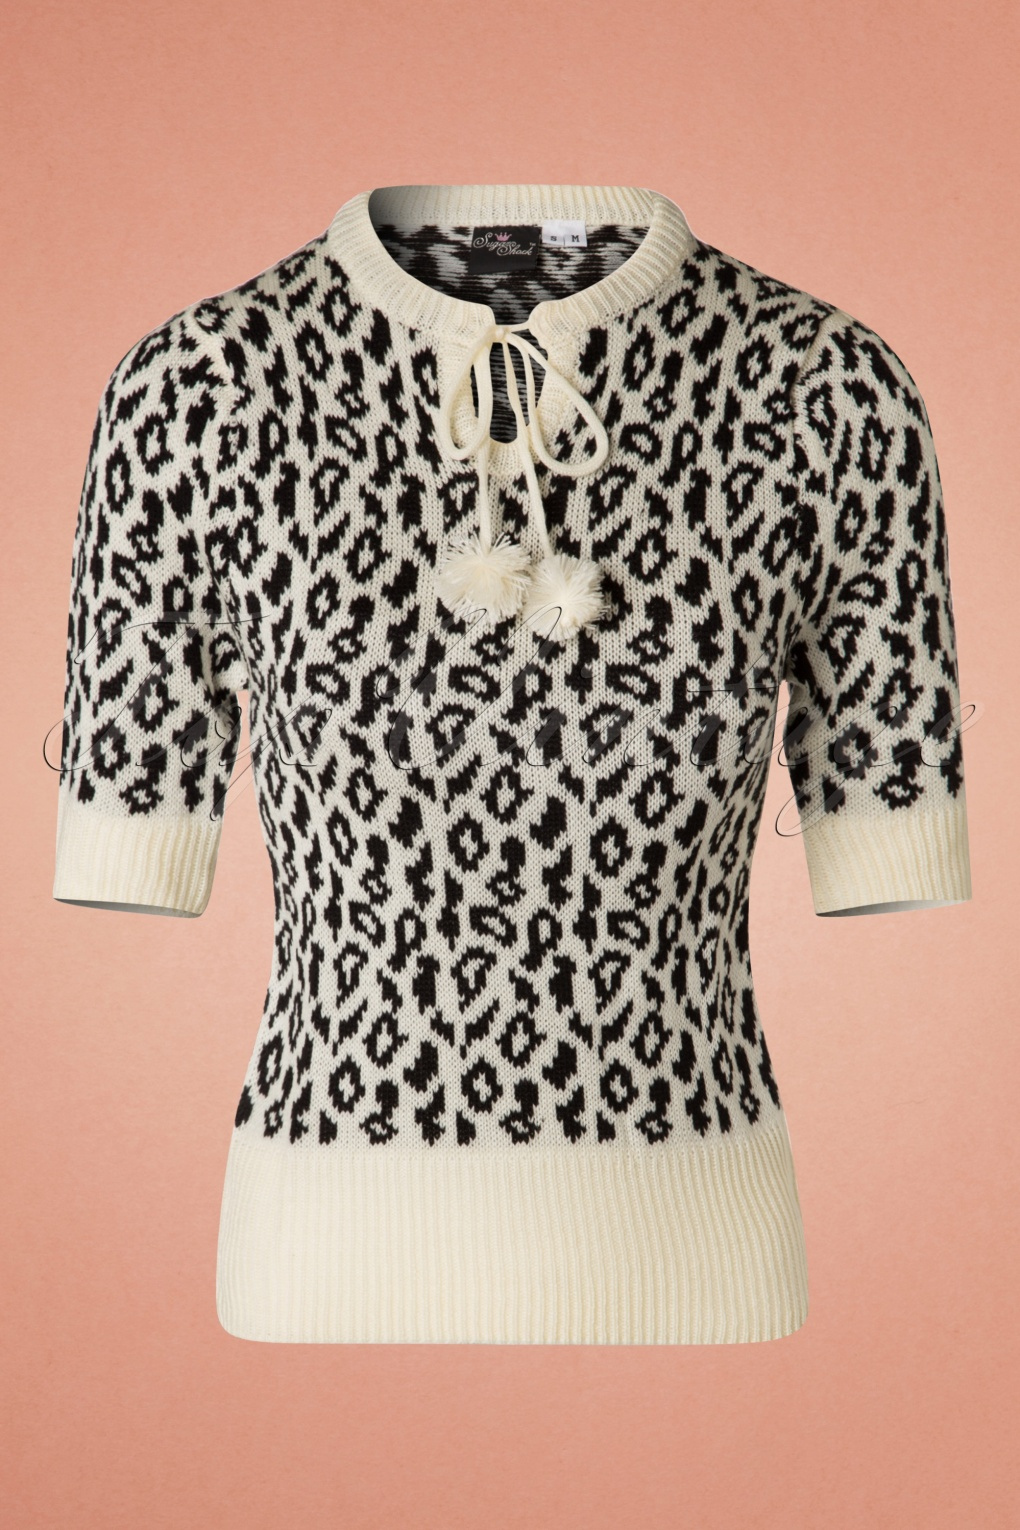 Vintage Sweaters: Cable Knit, Fair Isle Cardigans & Sweaters 50s Francesca Leopard Jumper in Cream £35.51 AT vintagedancer.com